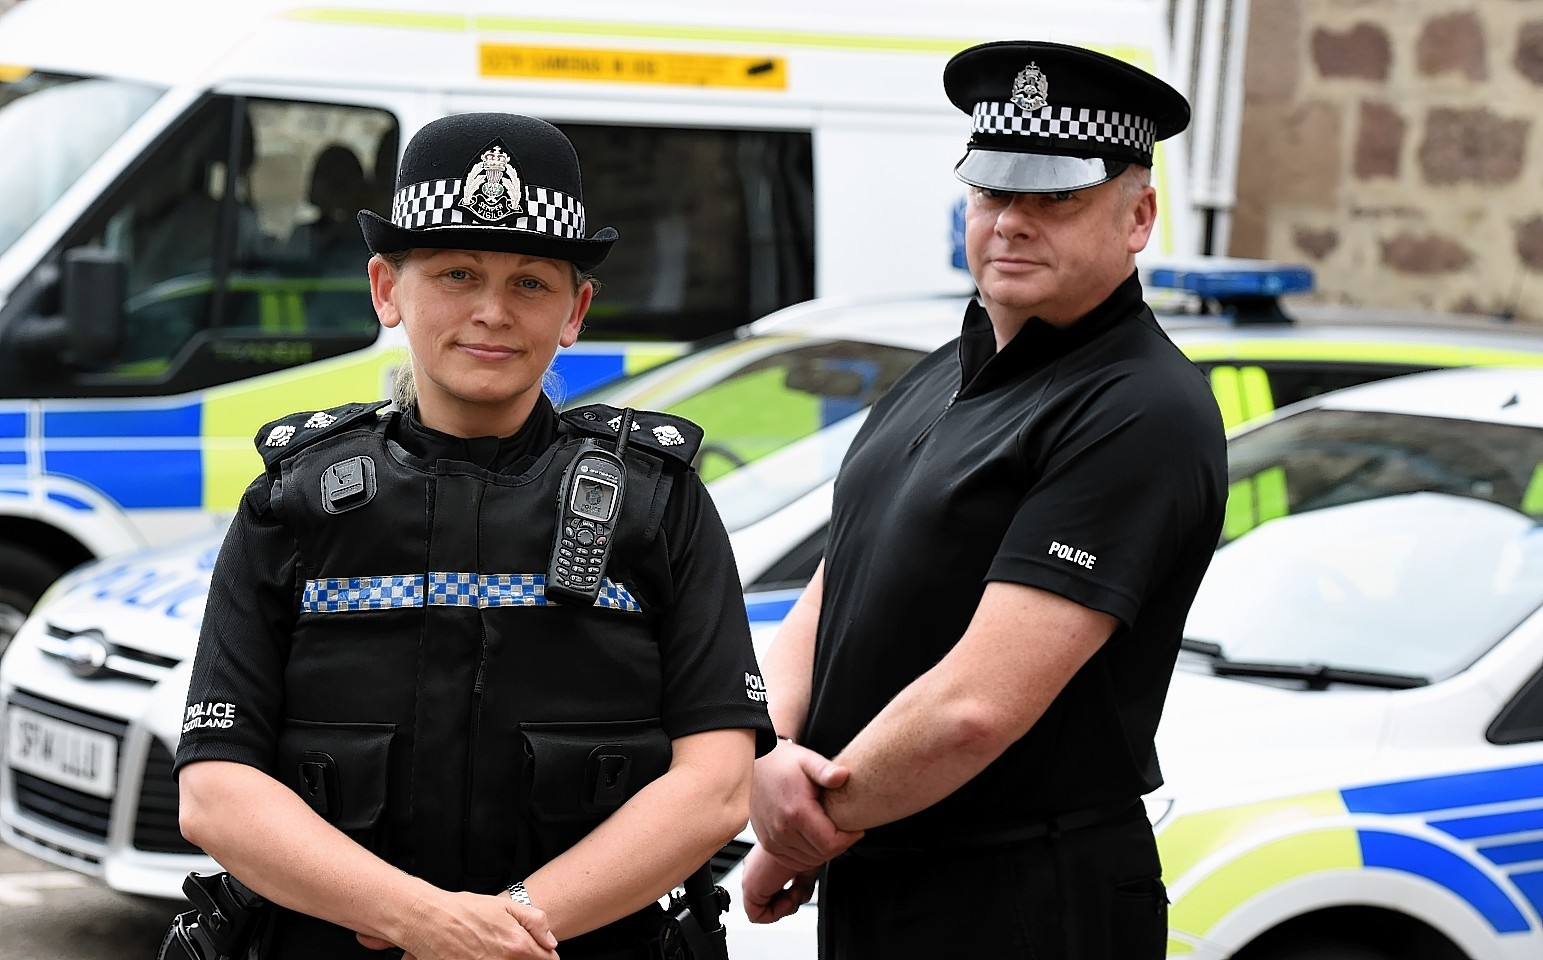 Kincardine and Mearns area inspector Finn McPhail with Crime Reduction Officer PC Kevin Marron